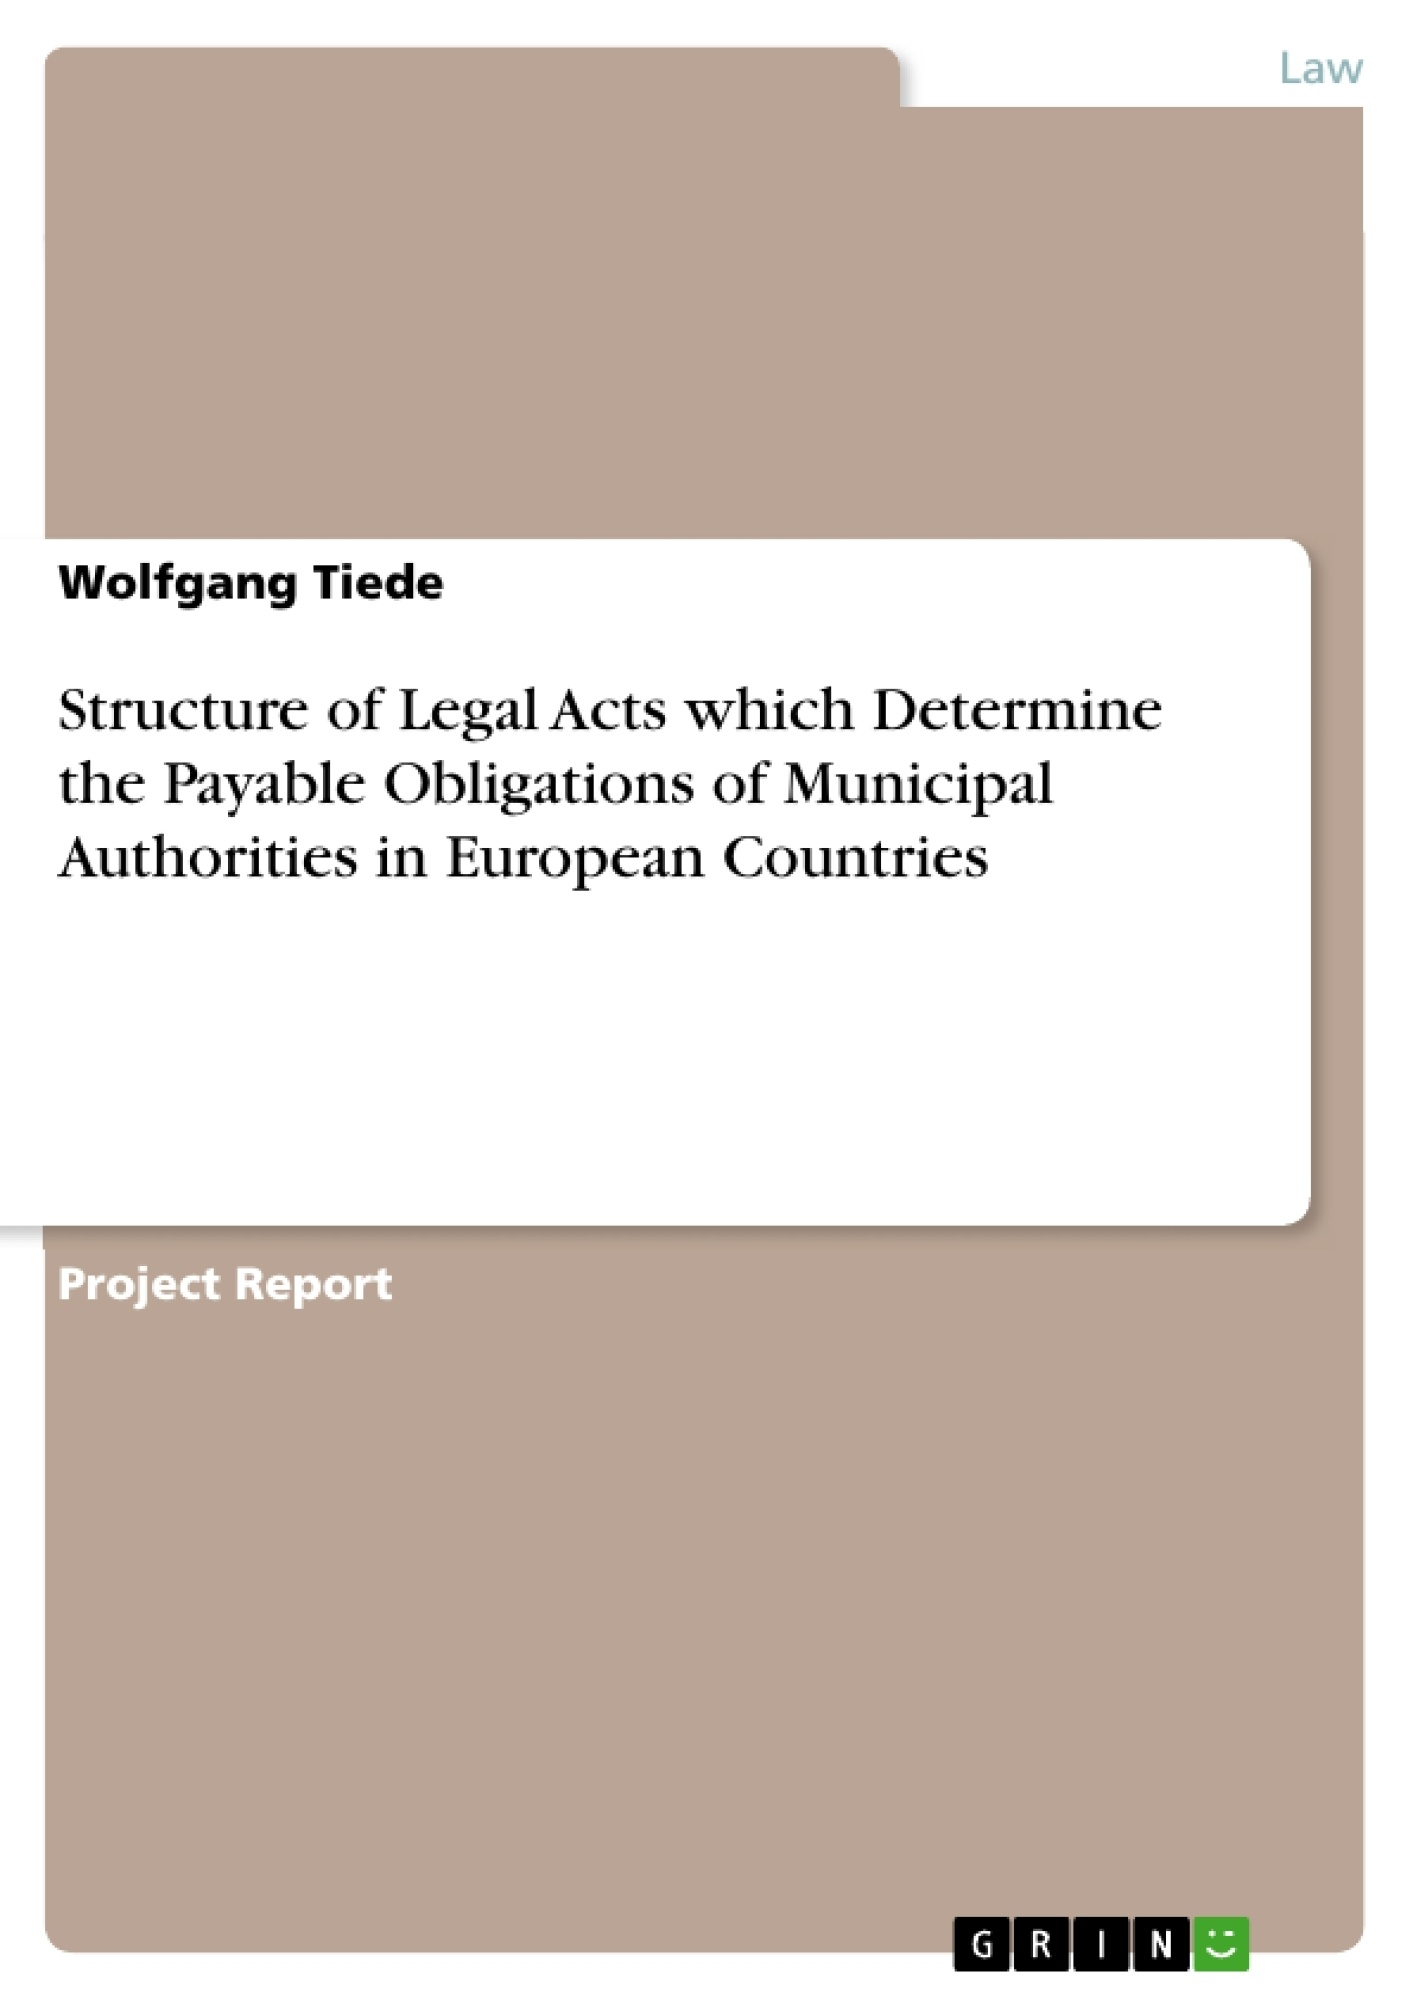 Title: Structure of Legal Acts which Determine the Payable Obligations of Municipal Authorities in European Countries